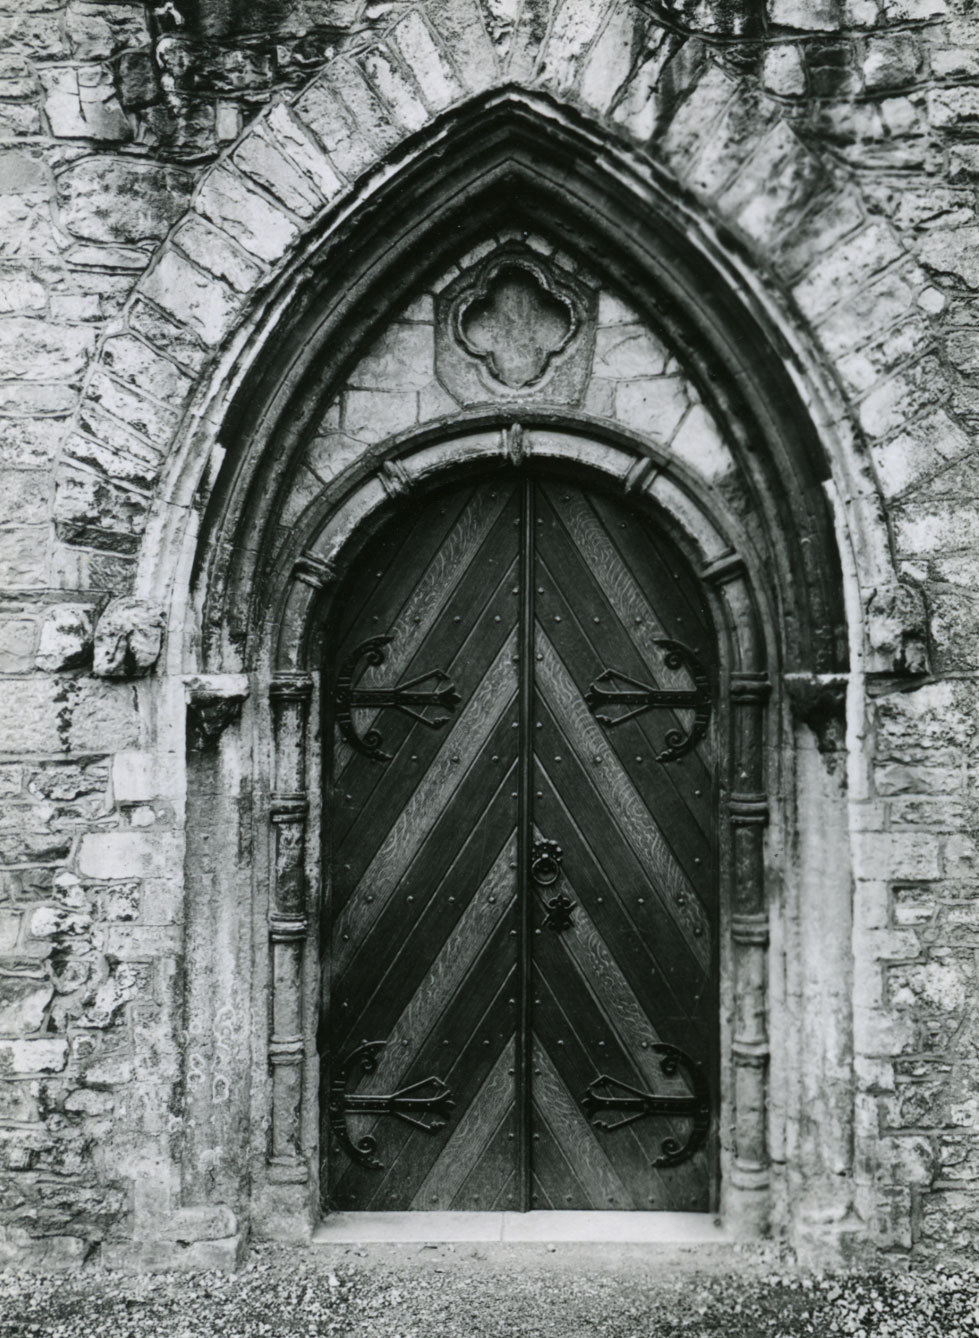 St. Canice's Cathedral, Kilkenny, County Kilkenny - Doorway Author: Rae, Edwin Issue Date: 2008